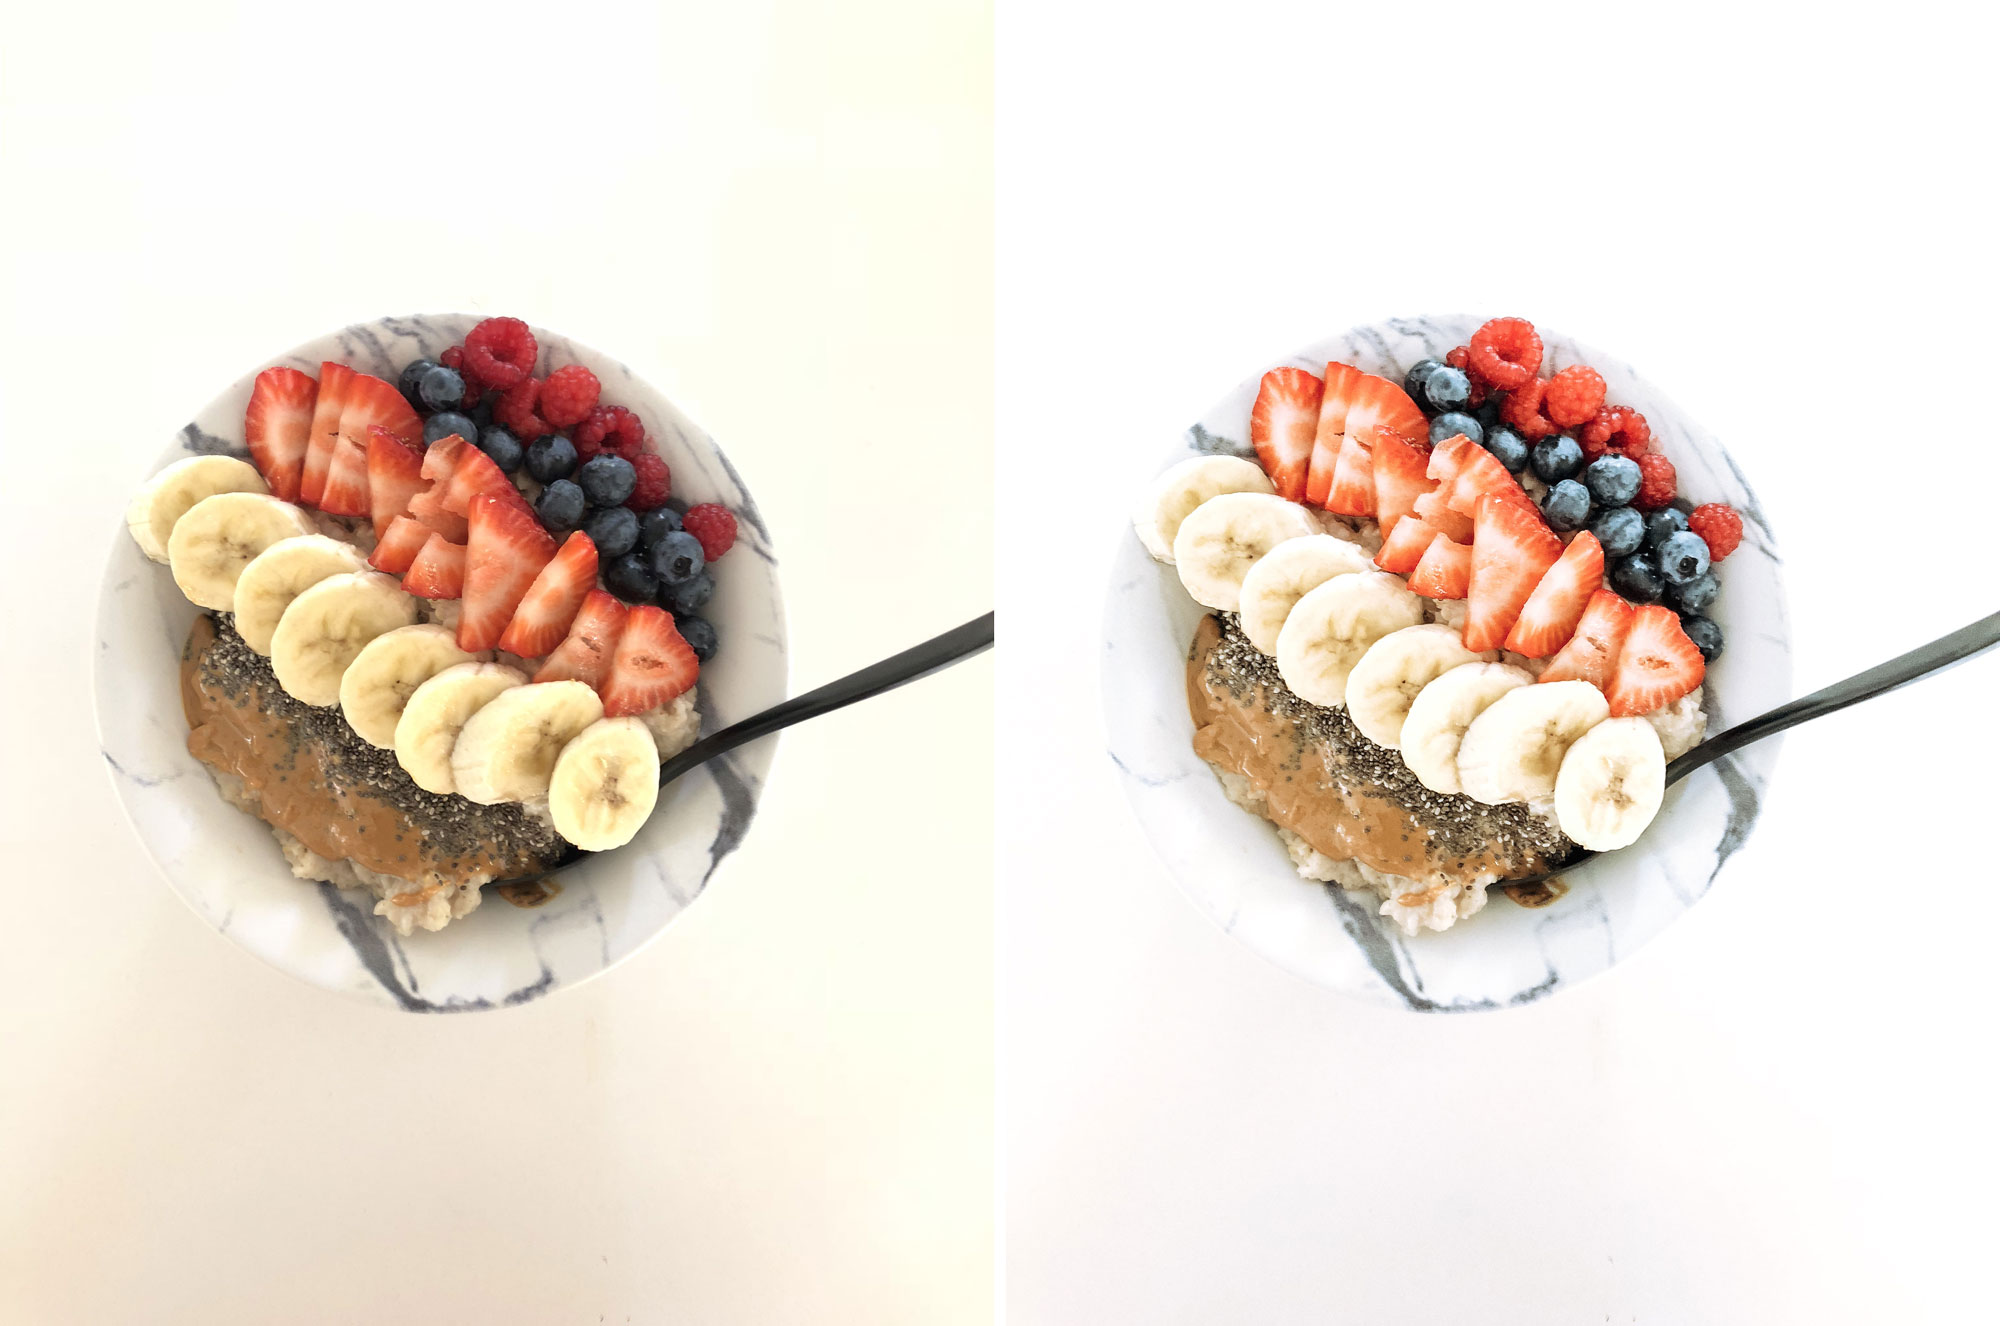 fruit-salad-before-and-after.jpg